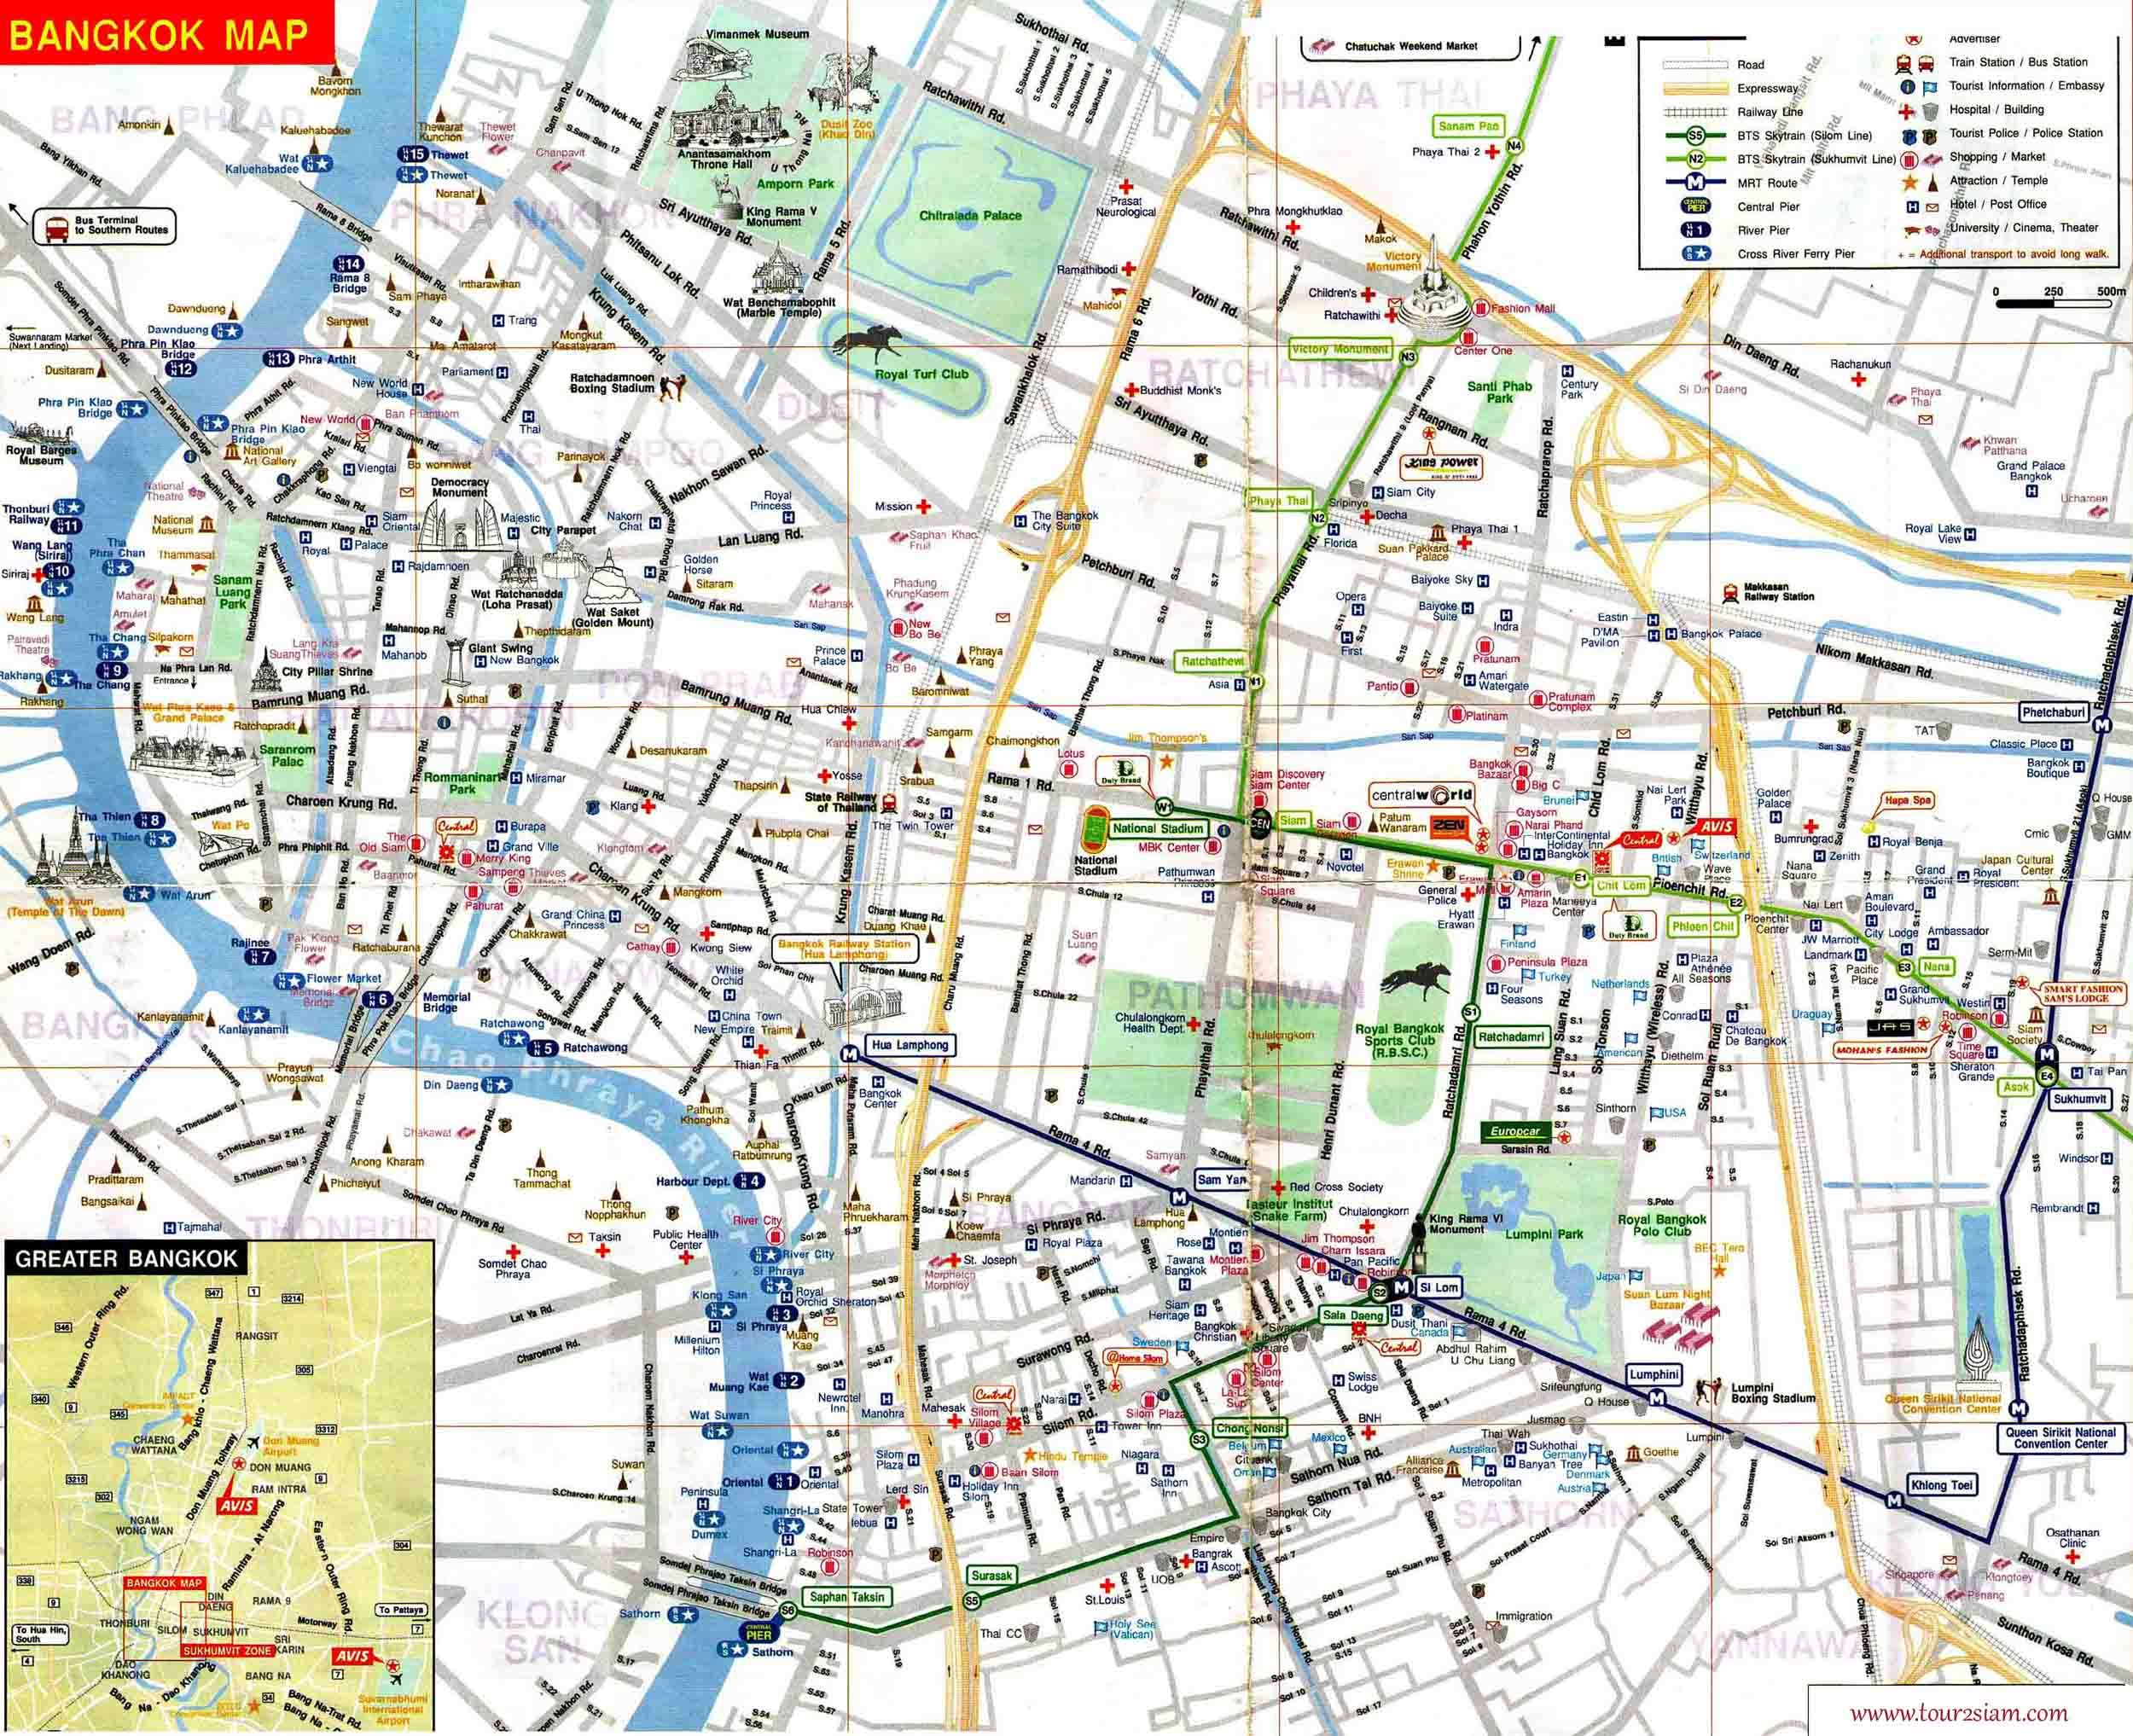 bangkok thailand attractions map – Tourist Attractions Map In Thailand